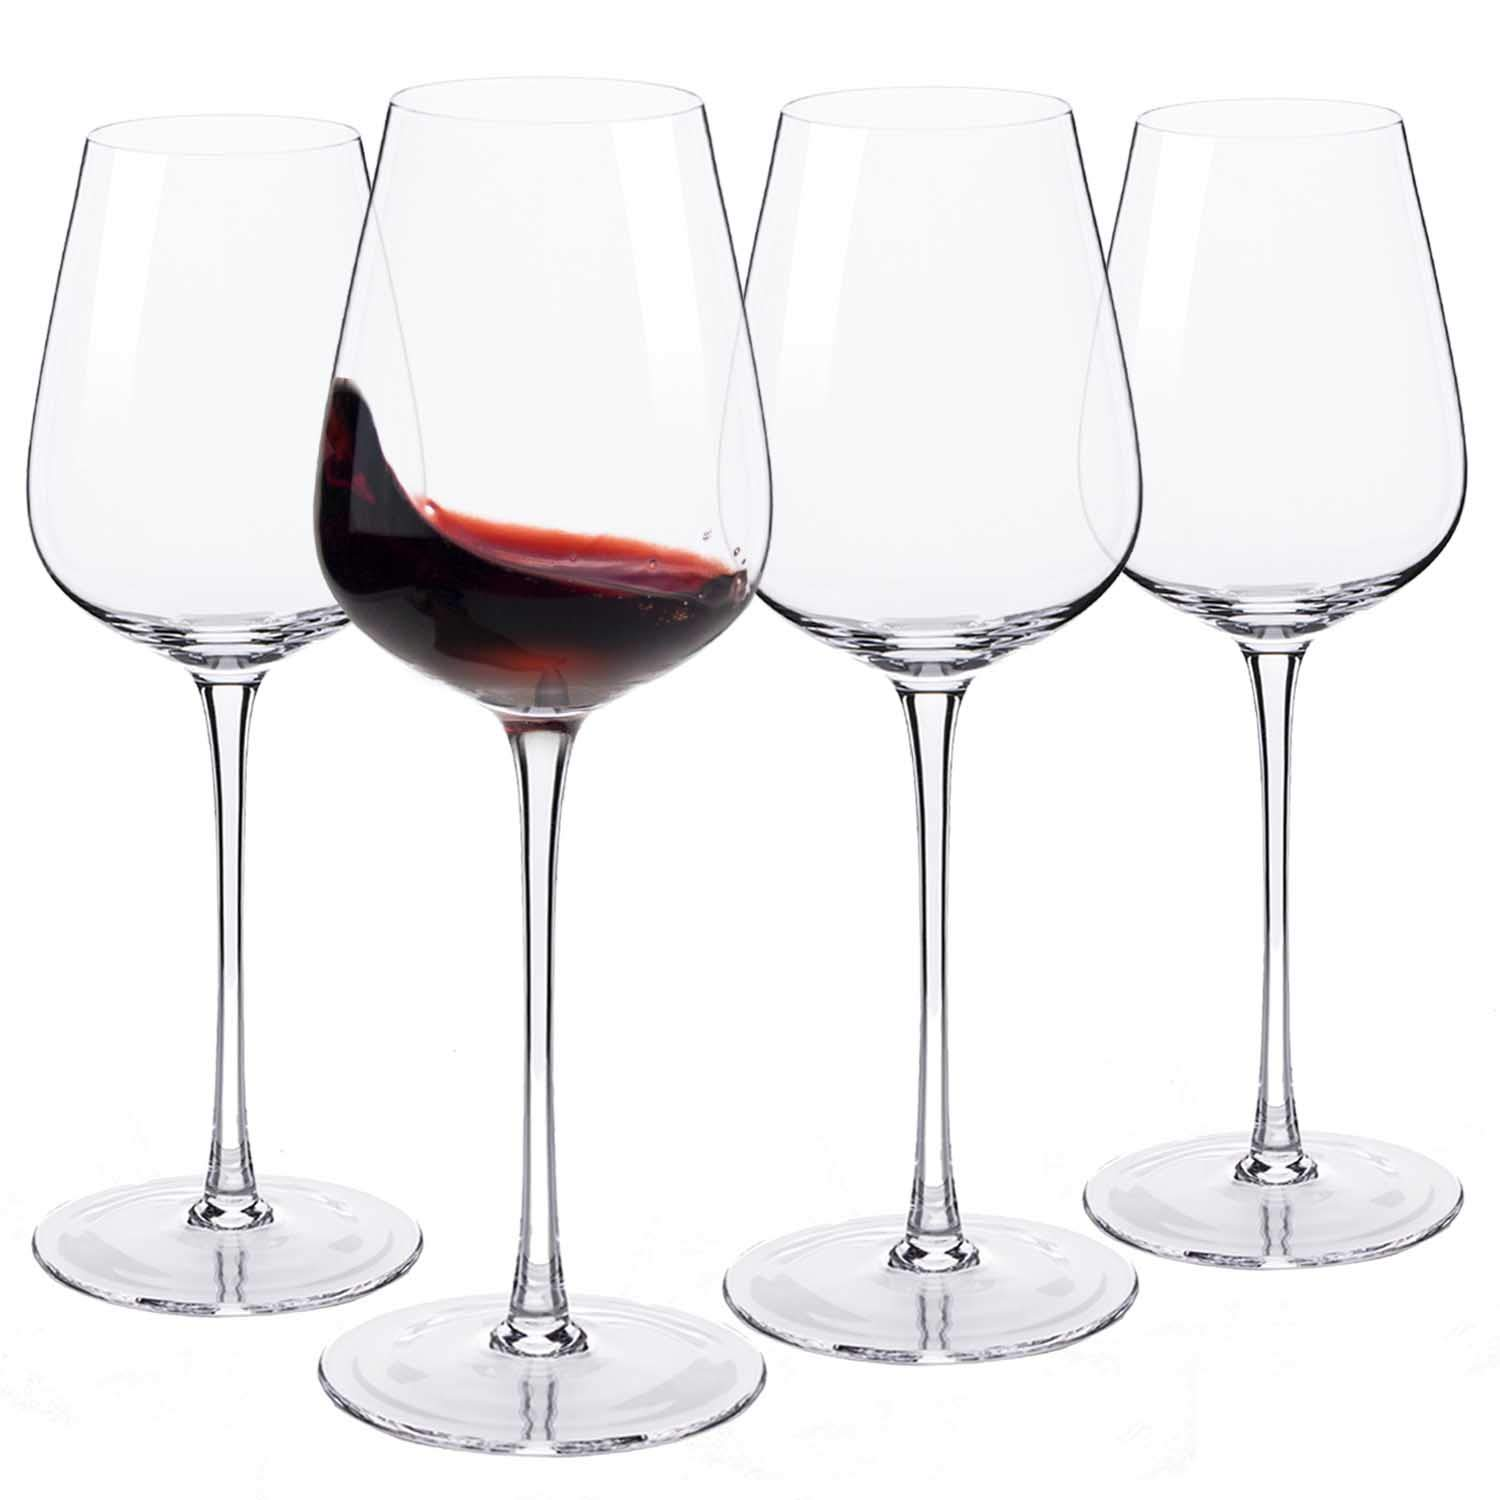 Hand Blown Italian Style Crystal Bordeaux Wine Glasses - JBHome Lead-Free Premium Crystal Clear Glass - Set of 4-18 Ounce - Safer Packaging for Any Occasion